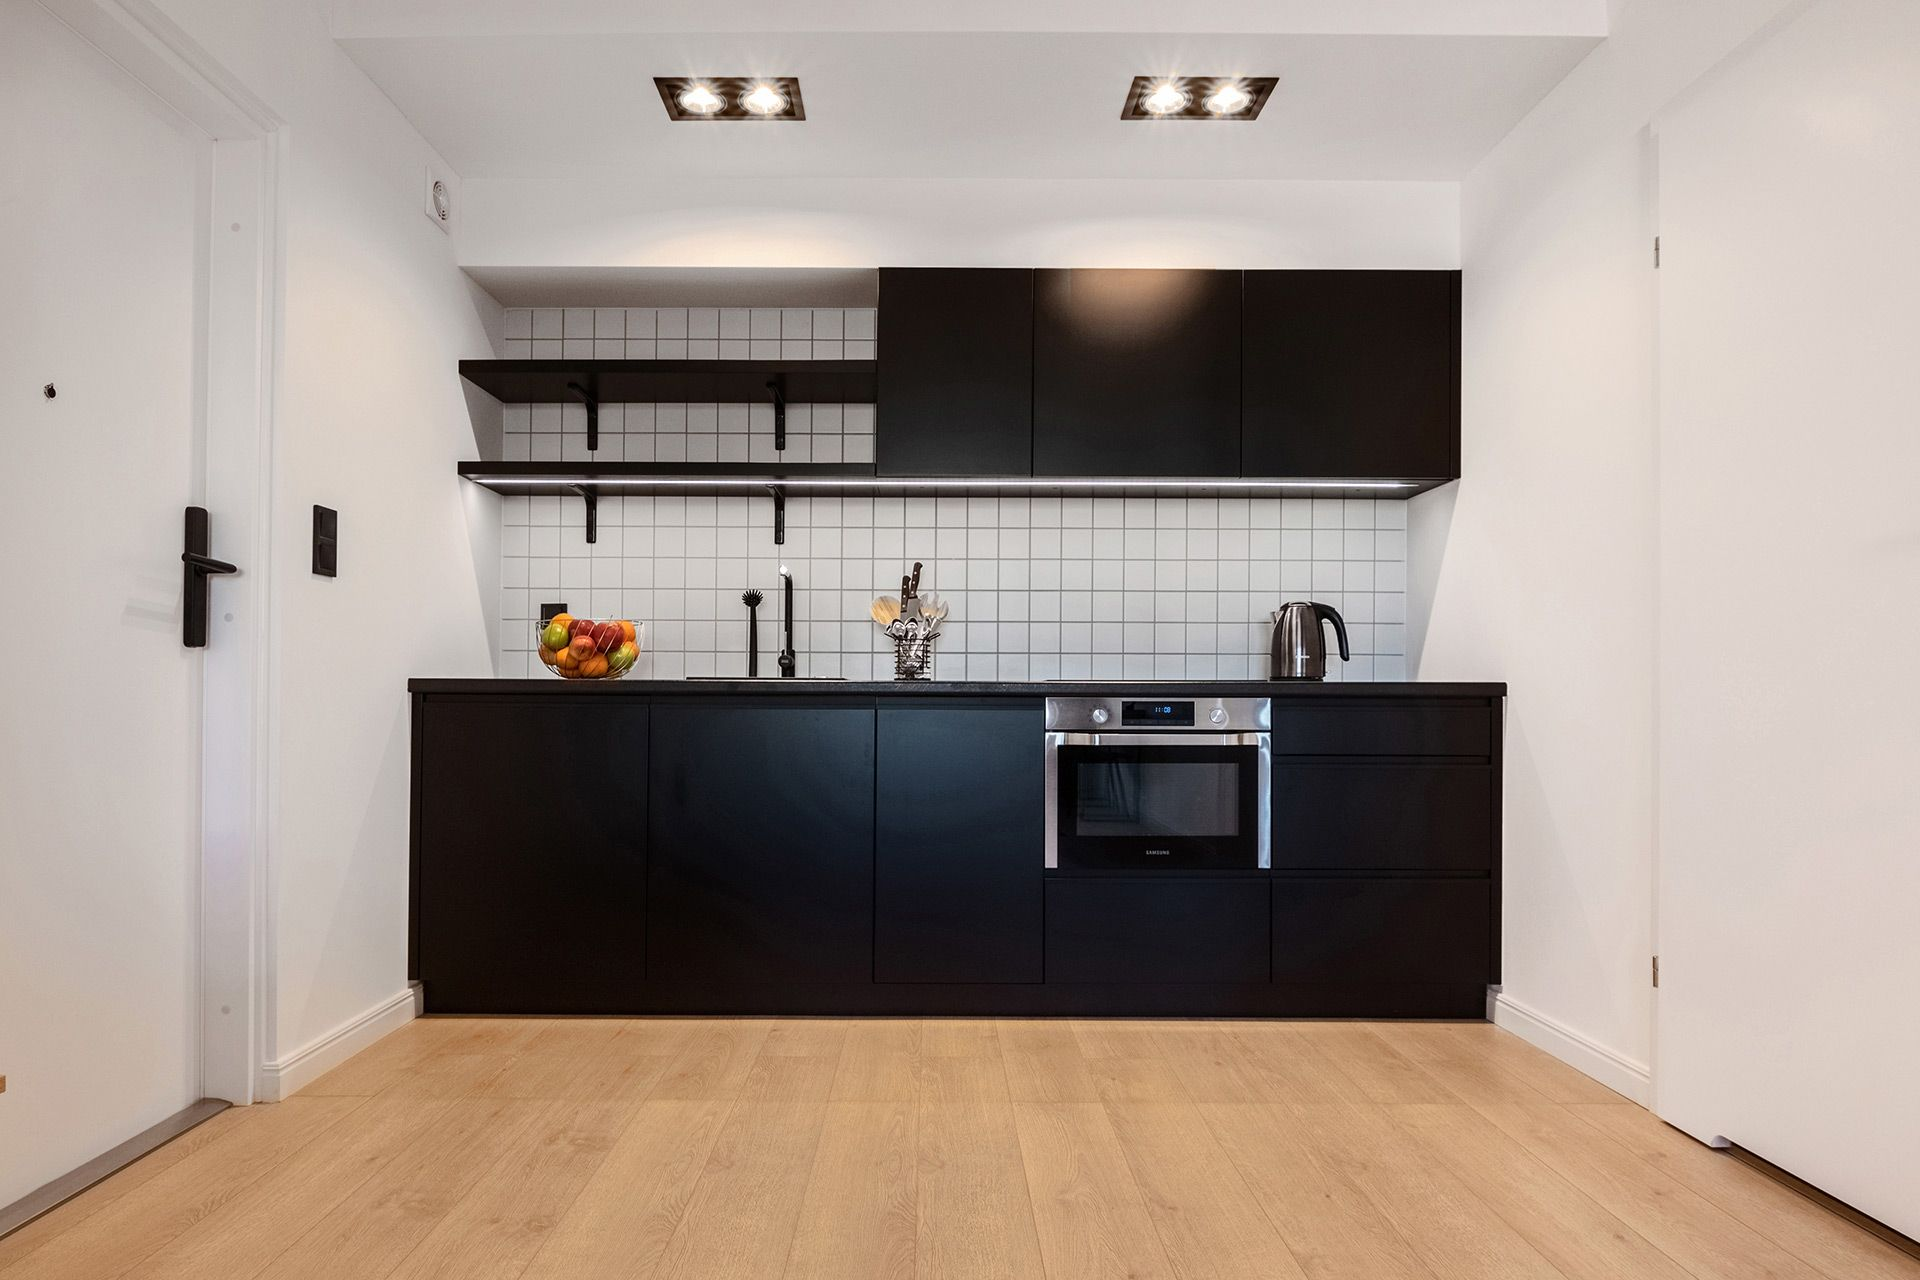 1 Bedroom - Medium apartment to rent in Warsaw UPR-A-033-1